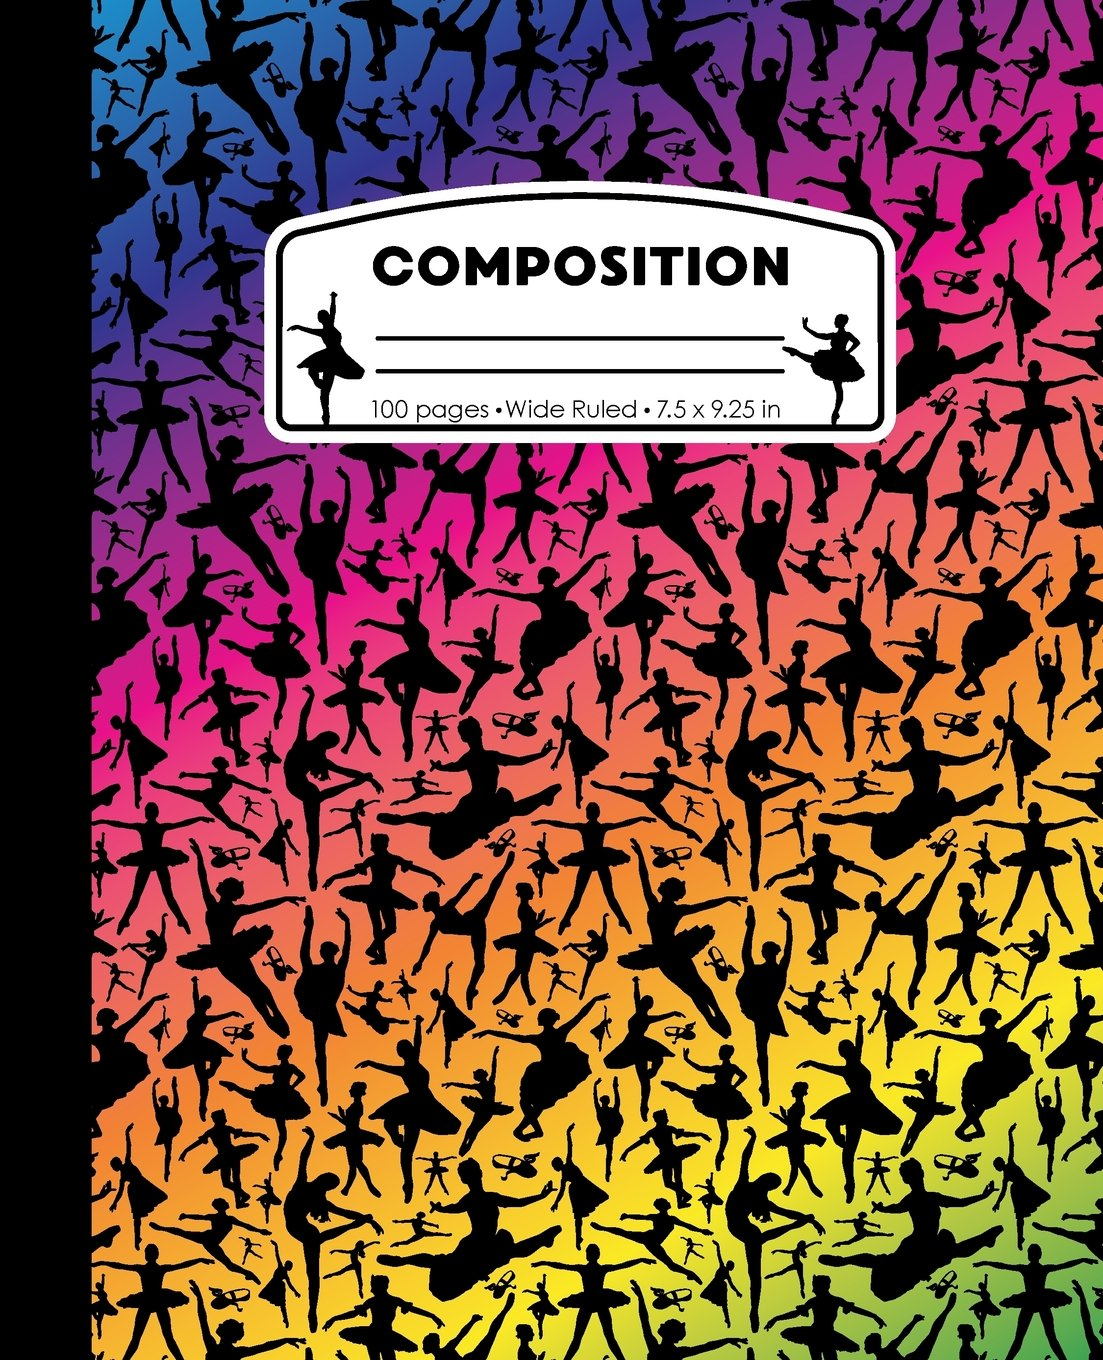 Composition: Ballet Rainbow Black Marble Composition Notebook. Wide Ruled 7.5 x 9.25 in, 100 pages Ballerina Dancer book for girls, kids, school, ... (Ballet Dance Marble Composition Books) PDF